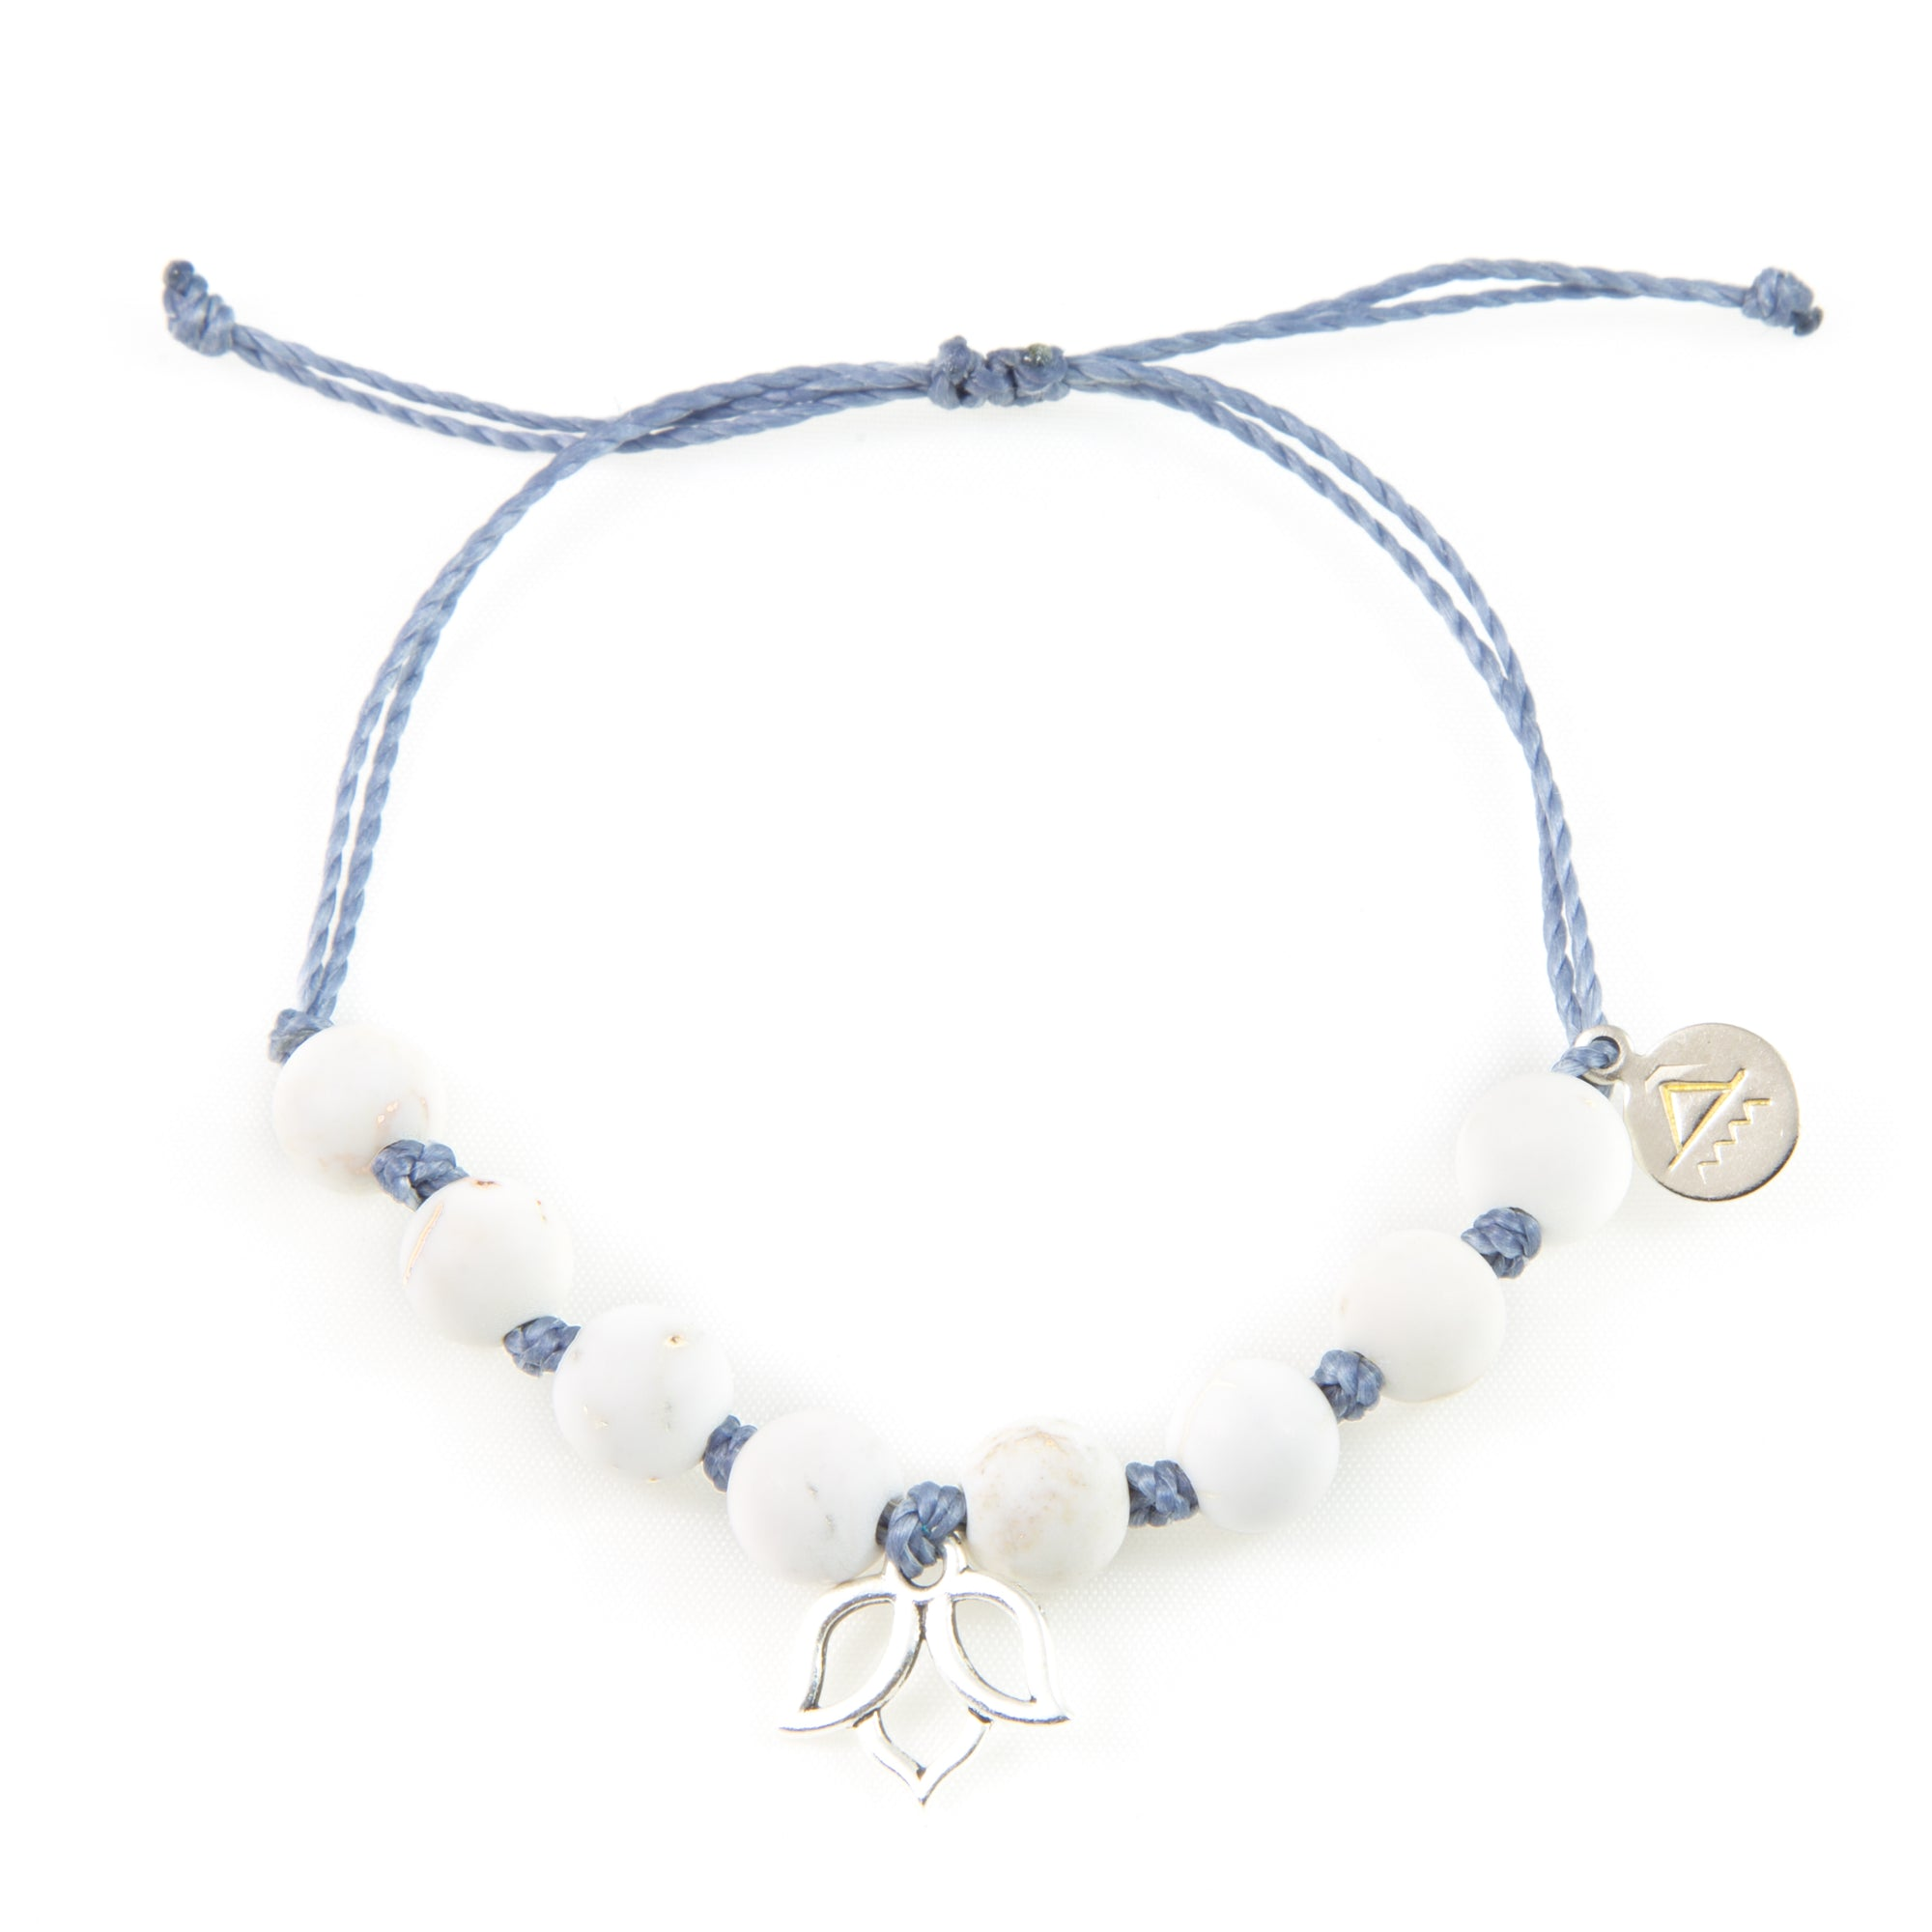 Denim & White Turquoise Lotus Flower Bracelet in Silver